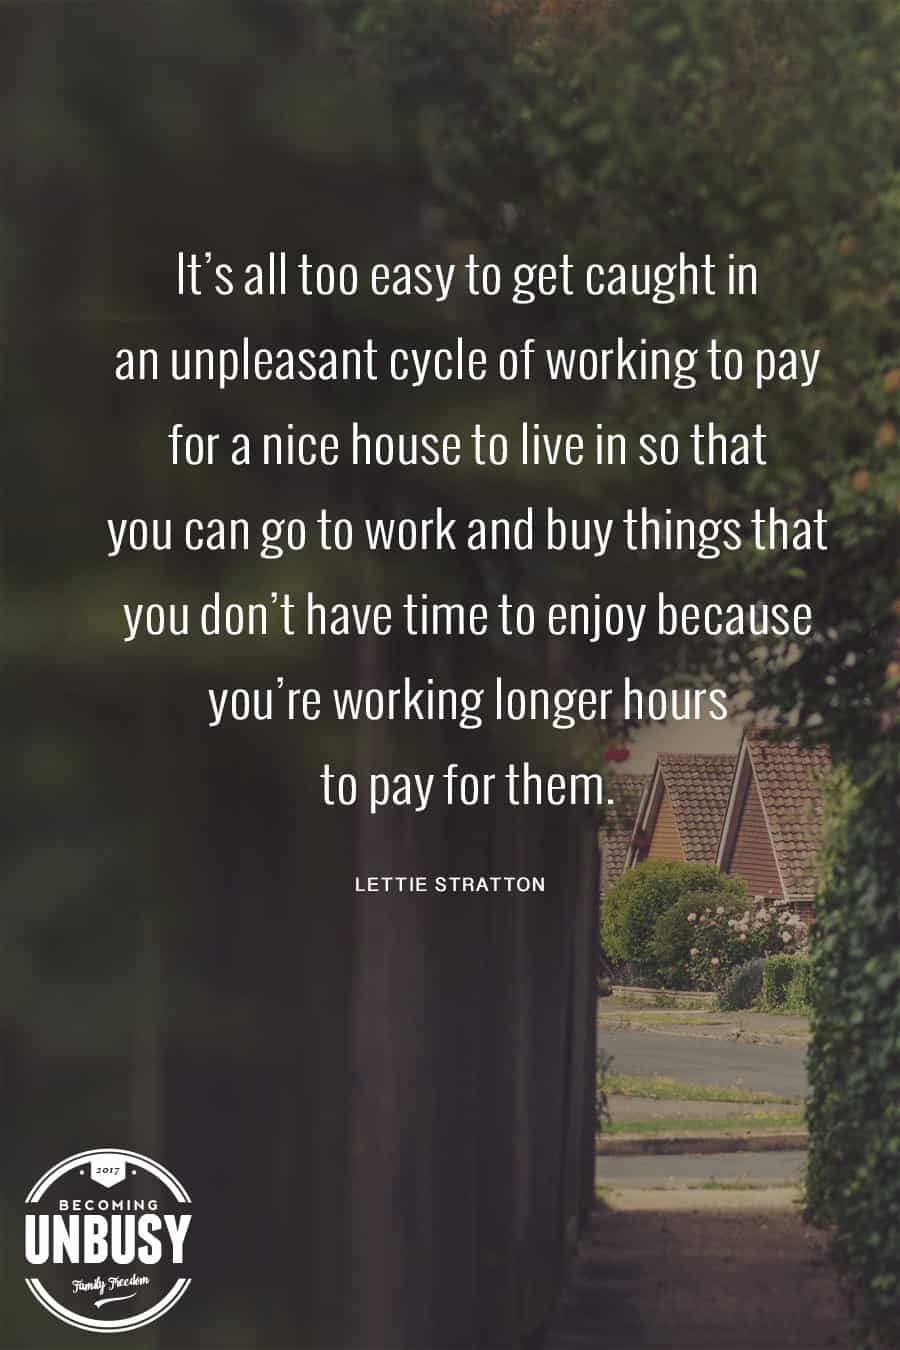 It's all too easy to get caught in an unpleasant cycle of working to pay for a nice house to live in so you can go to work and buy things you don't have time to enjoy because you're working longer hours to pay for them.